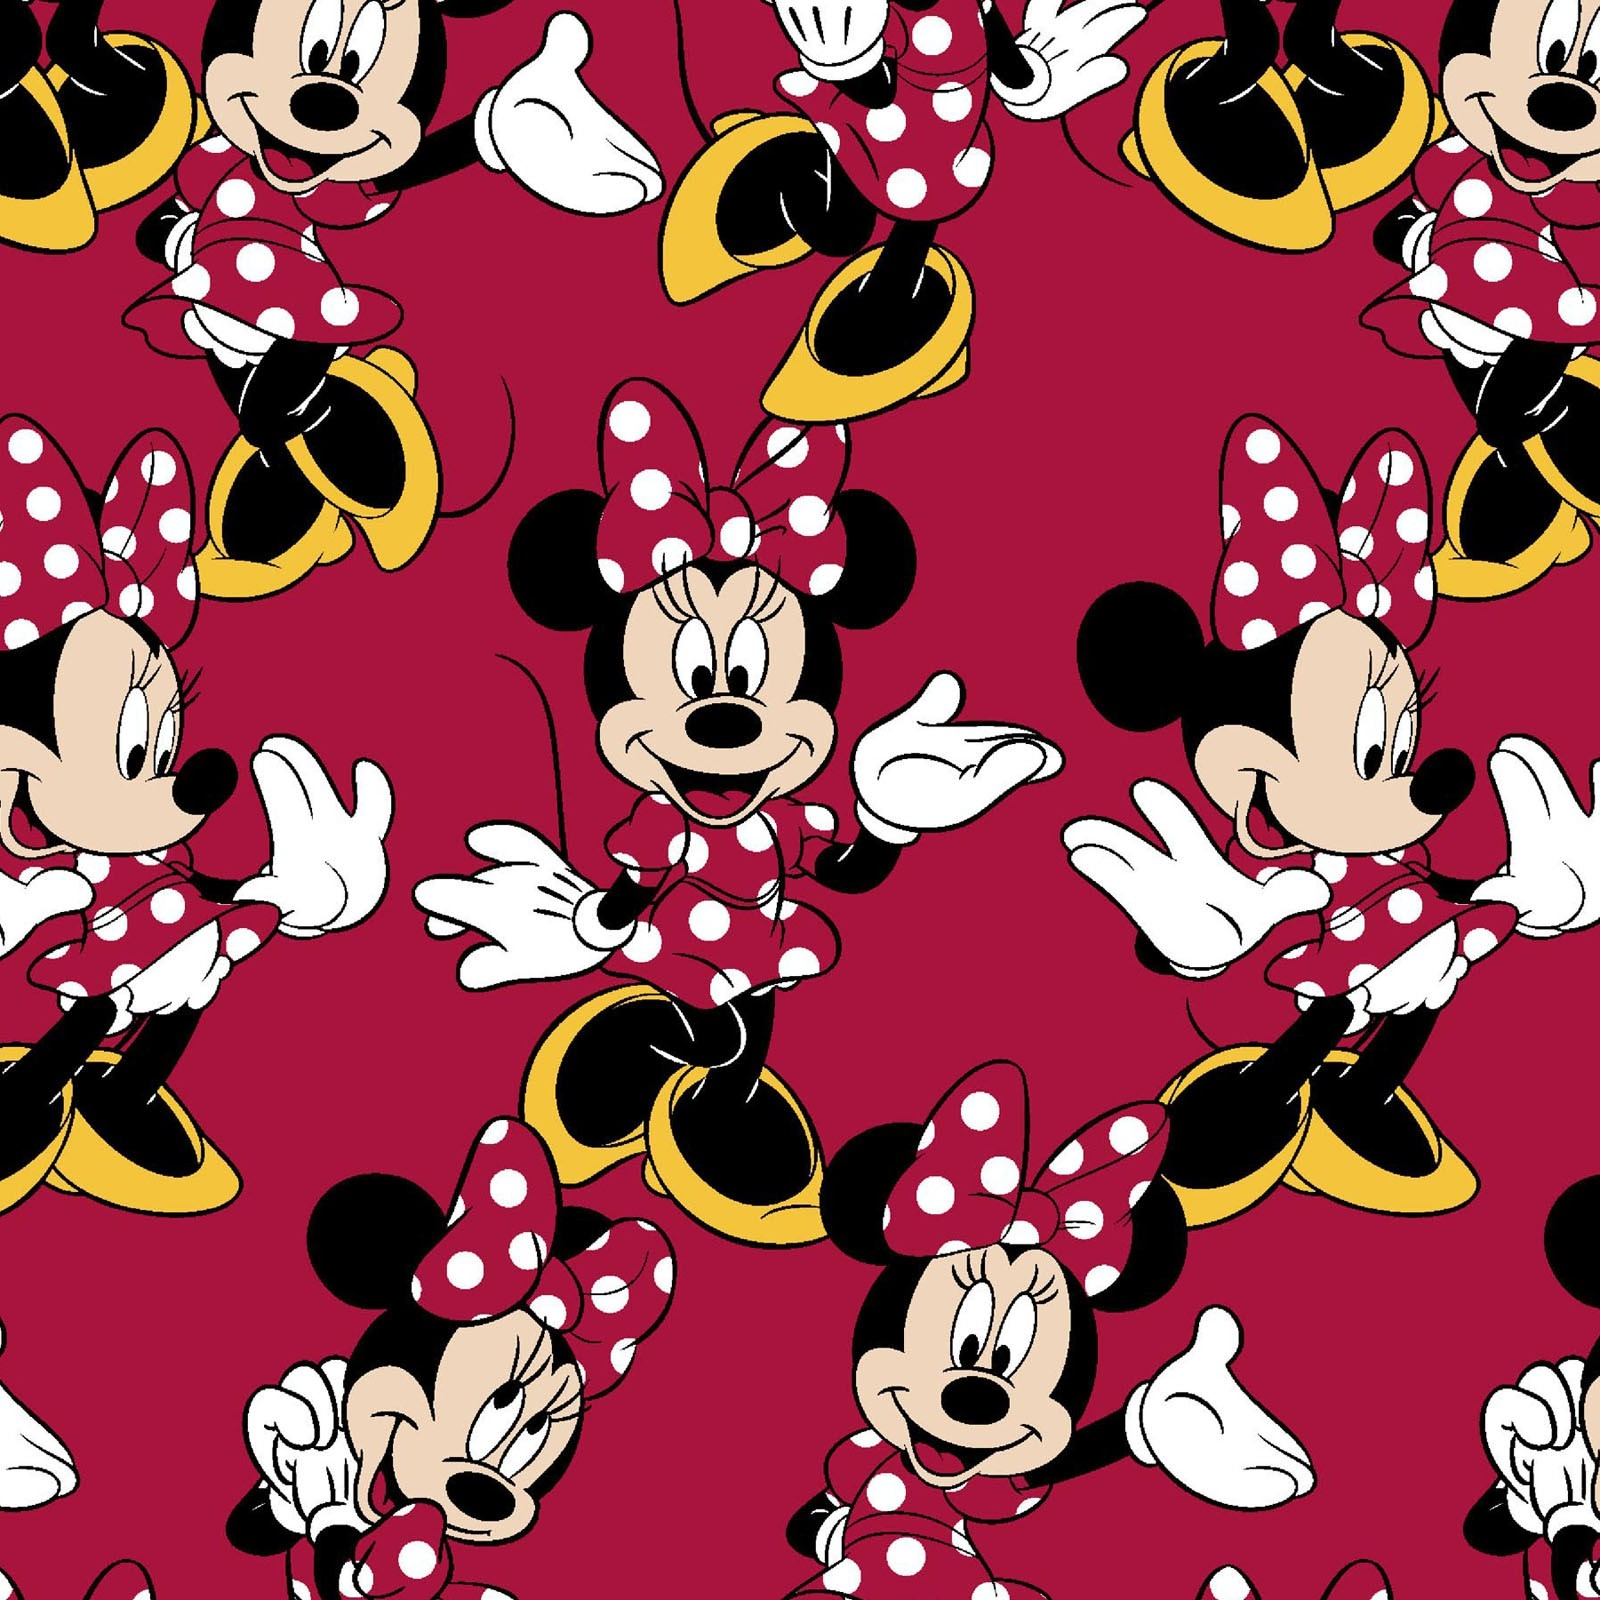 Minimouse Wallpaper: Minnie Mouse Background Images